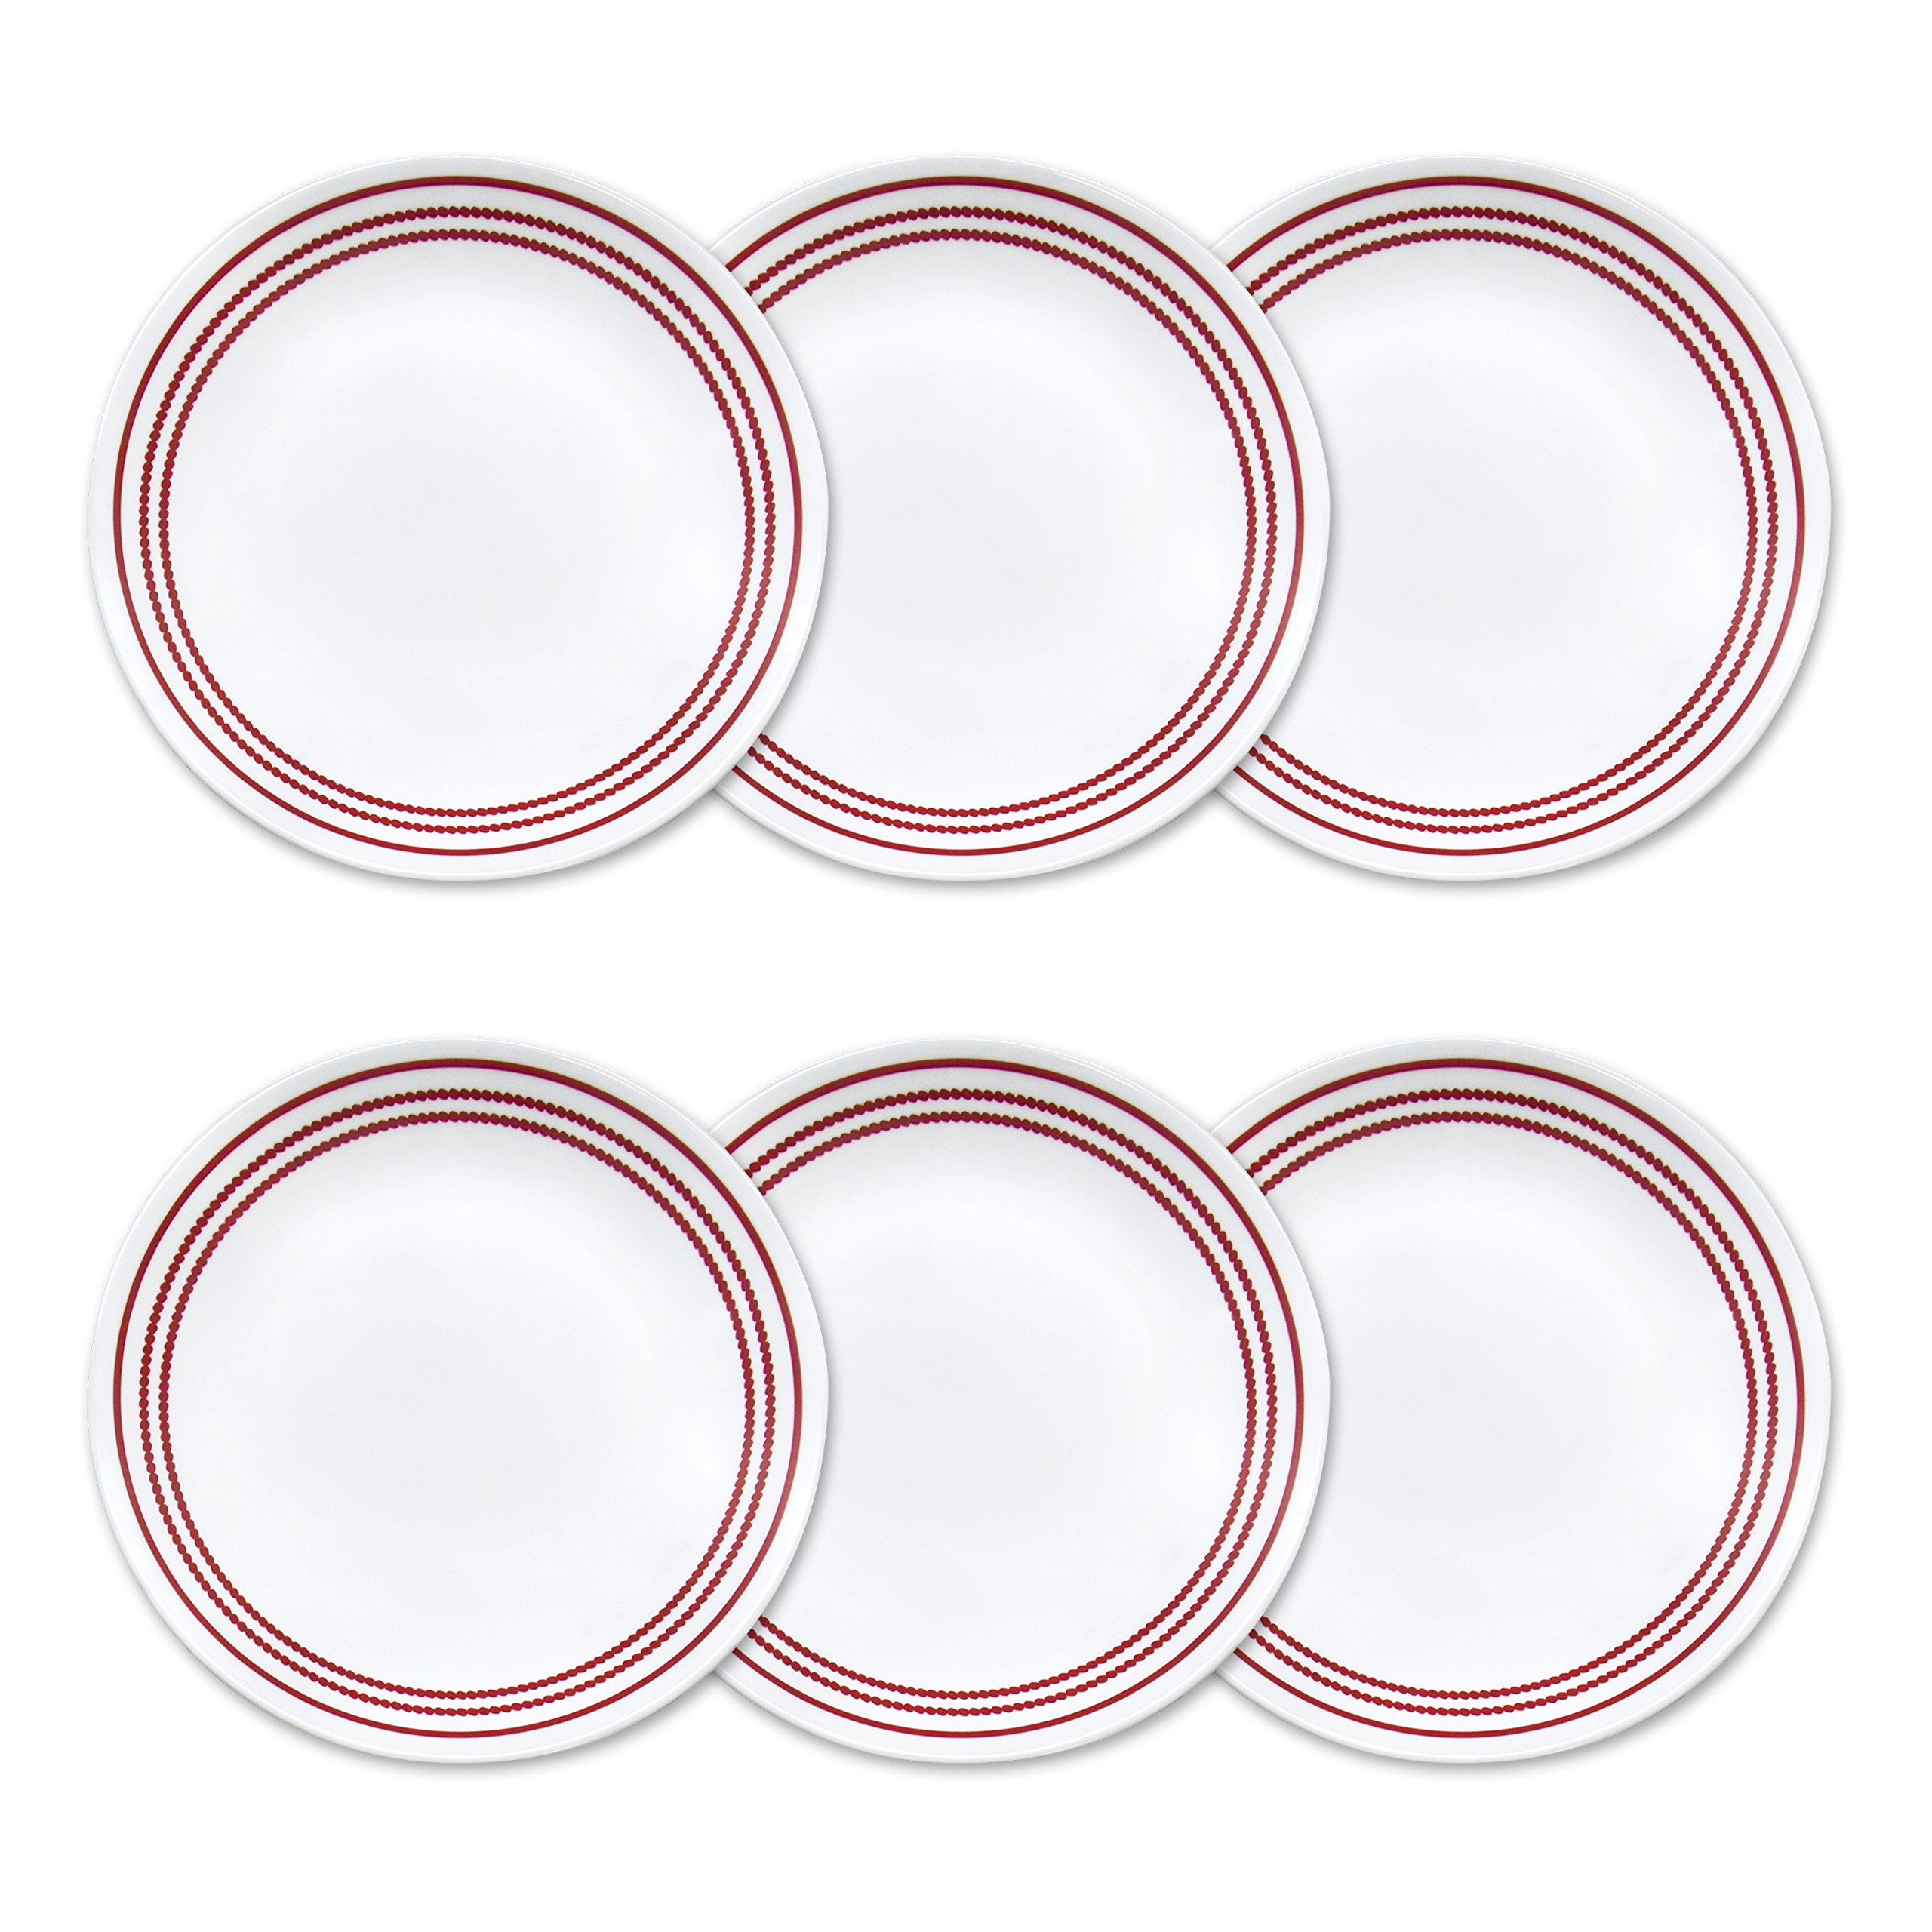 Corelle Livingware 6-Piece Ruby Red Lunch Plate Set, 8.5-Inch, White